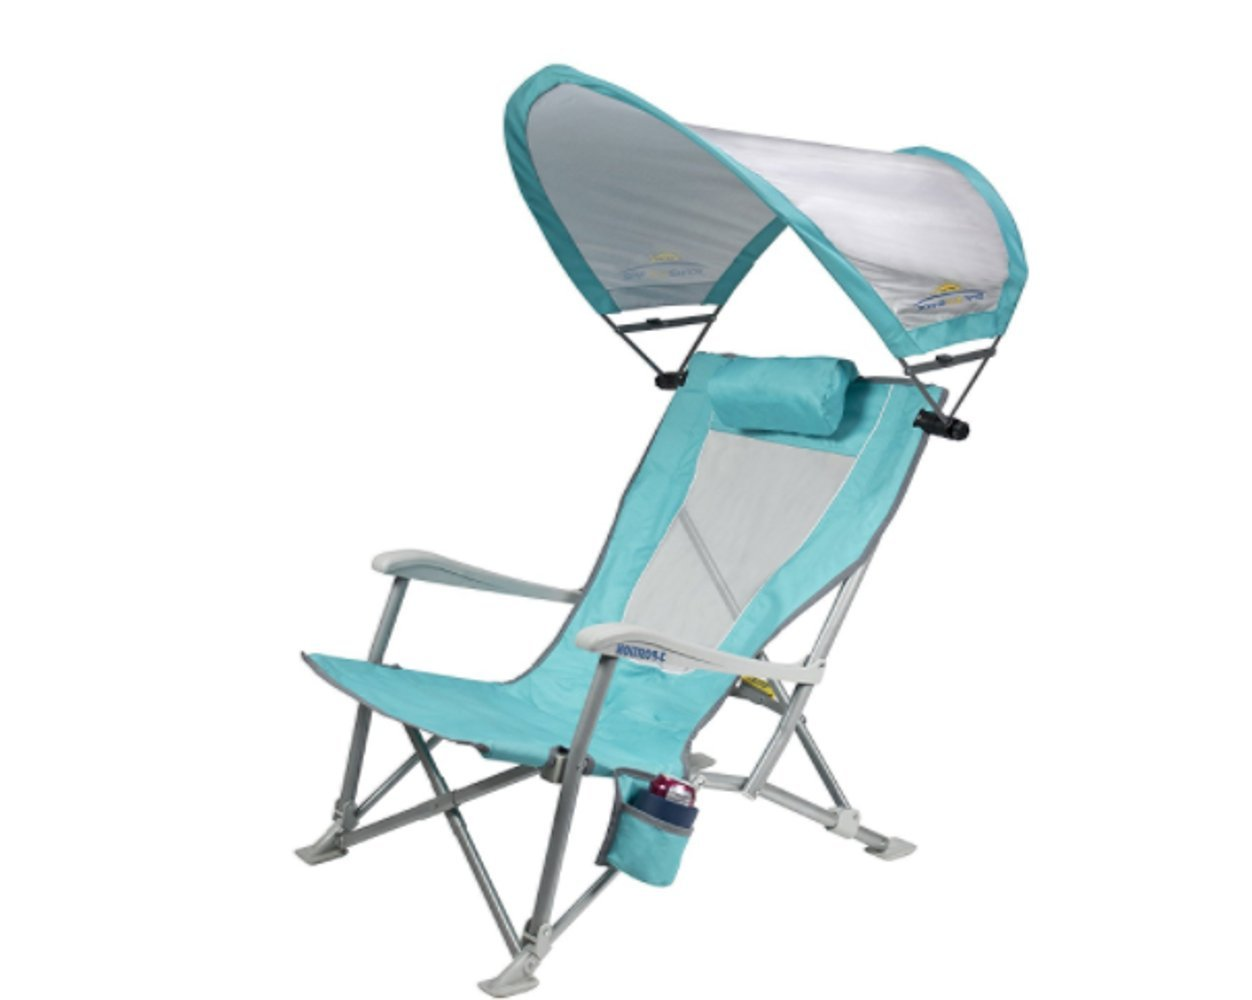 Foldable Bistro Chairs, Light Blue Color, Fade-Resistant Fiber, Aluminum Material, Storage Bag Included, Folds Up For Easy Transportation And Storage, Ideal For Outdoor Spaces & E-Book by Foldable